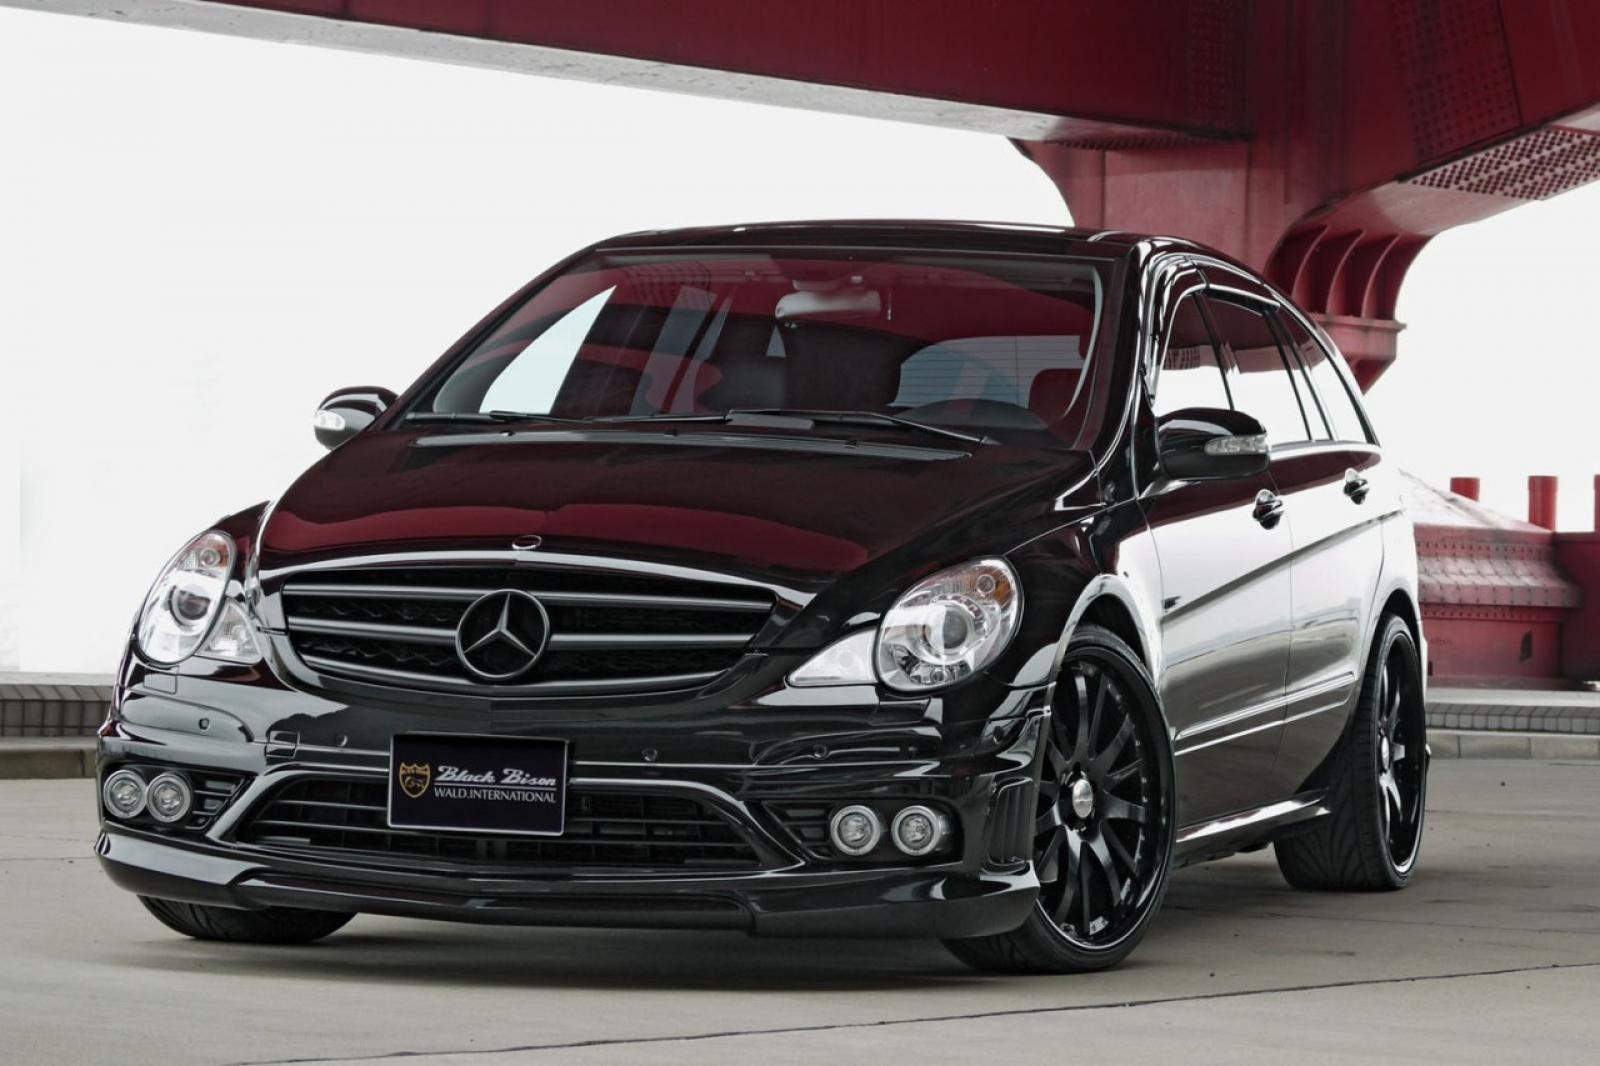 tx r allstar class photos benz sale additional view inventory mercedes for kennedale